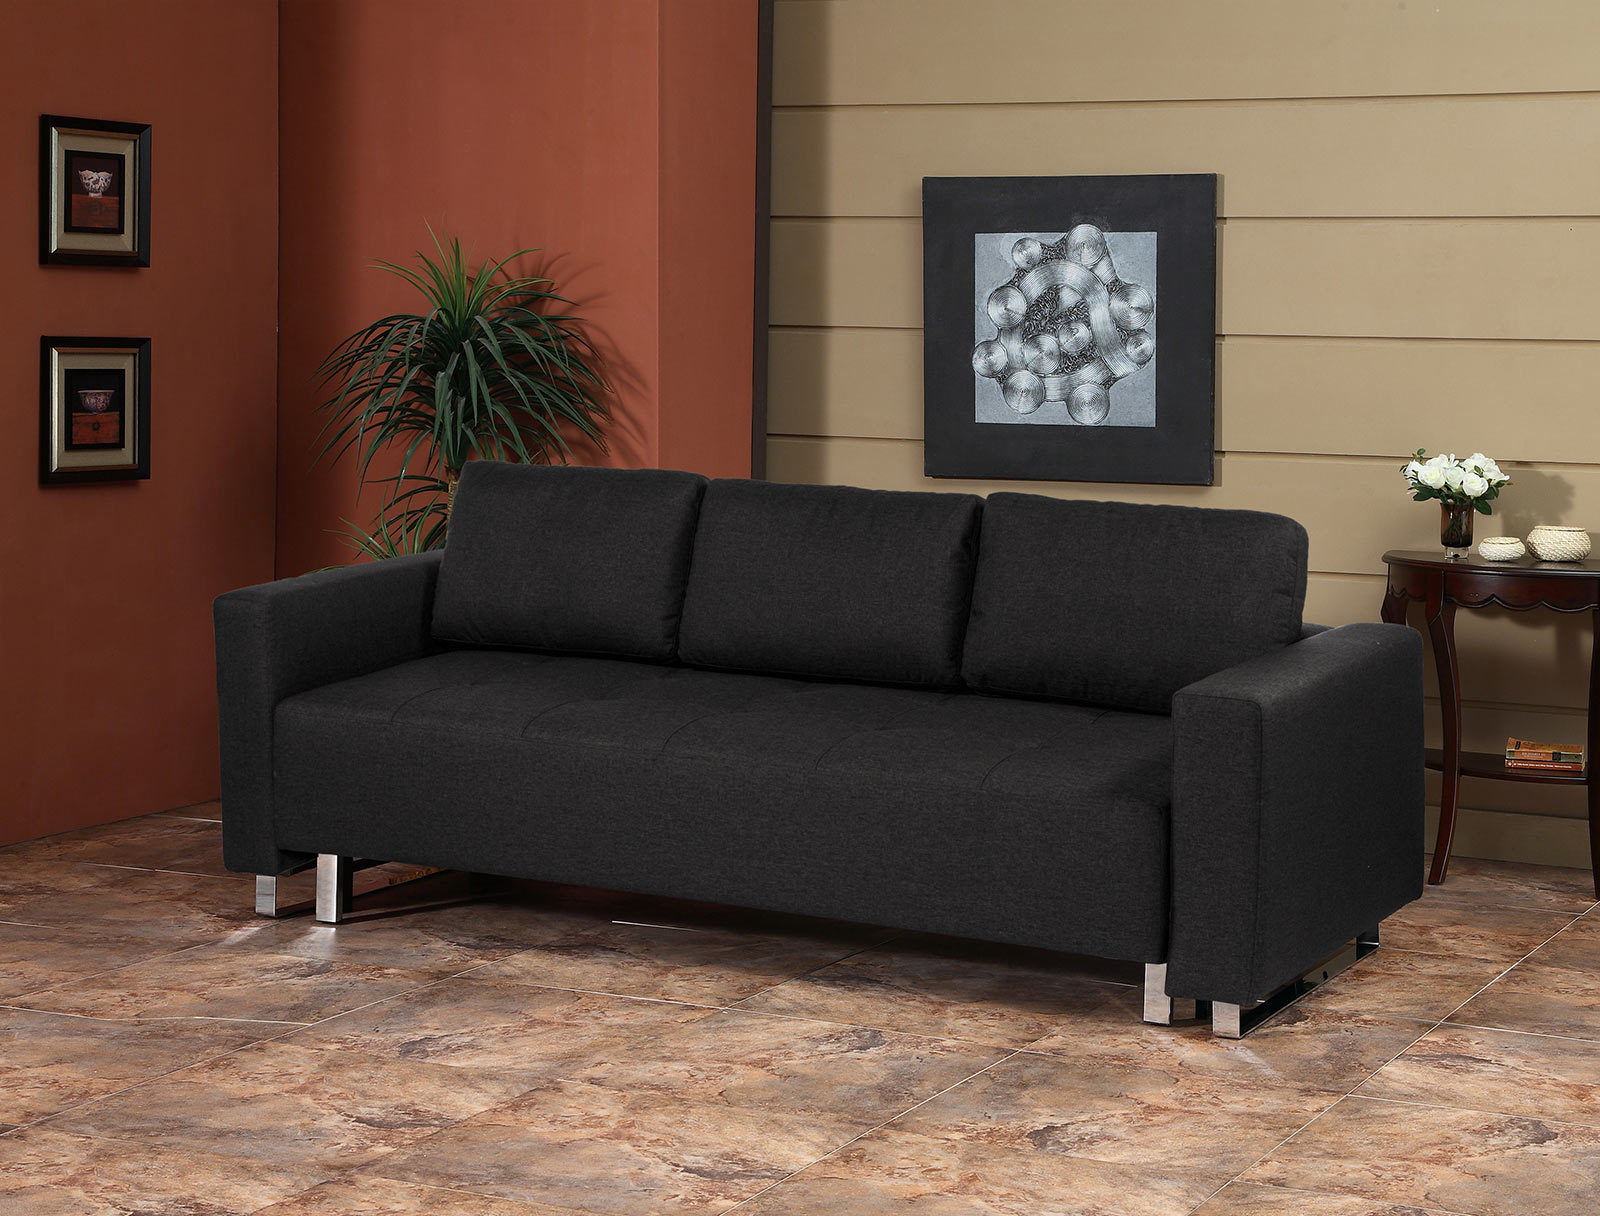 Lincoln Park Convertible Sofa Bed Charcoal by Serta Lifestyle